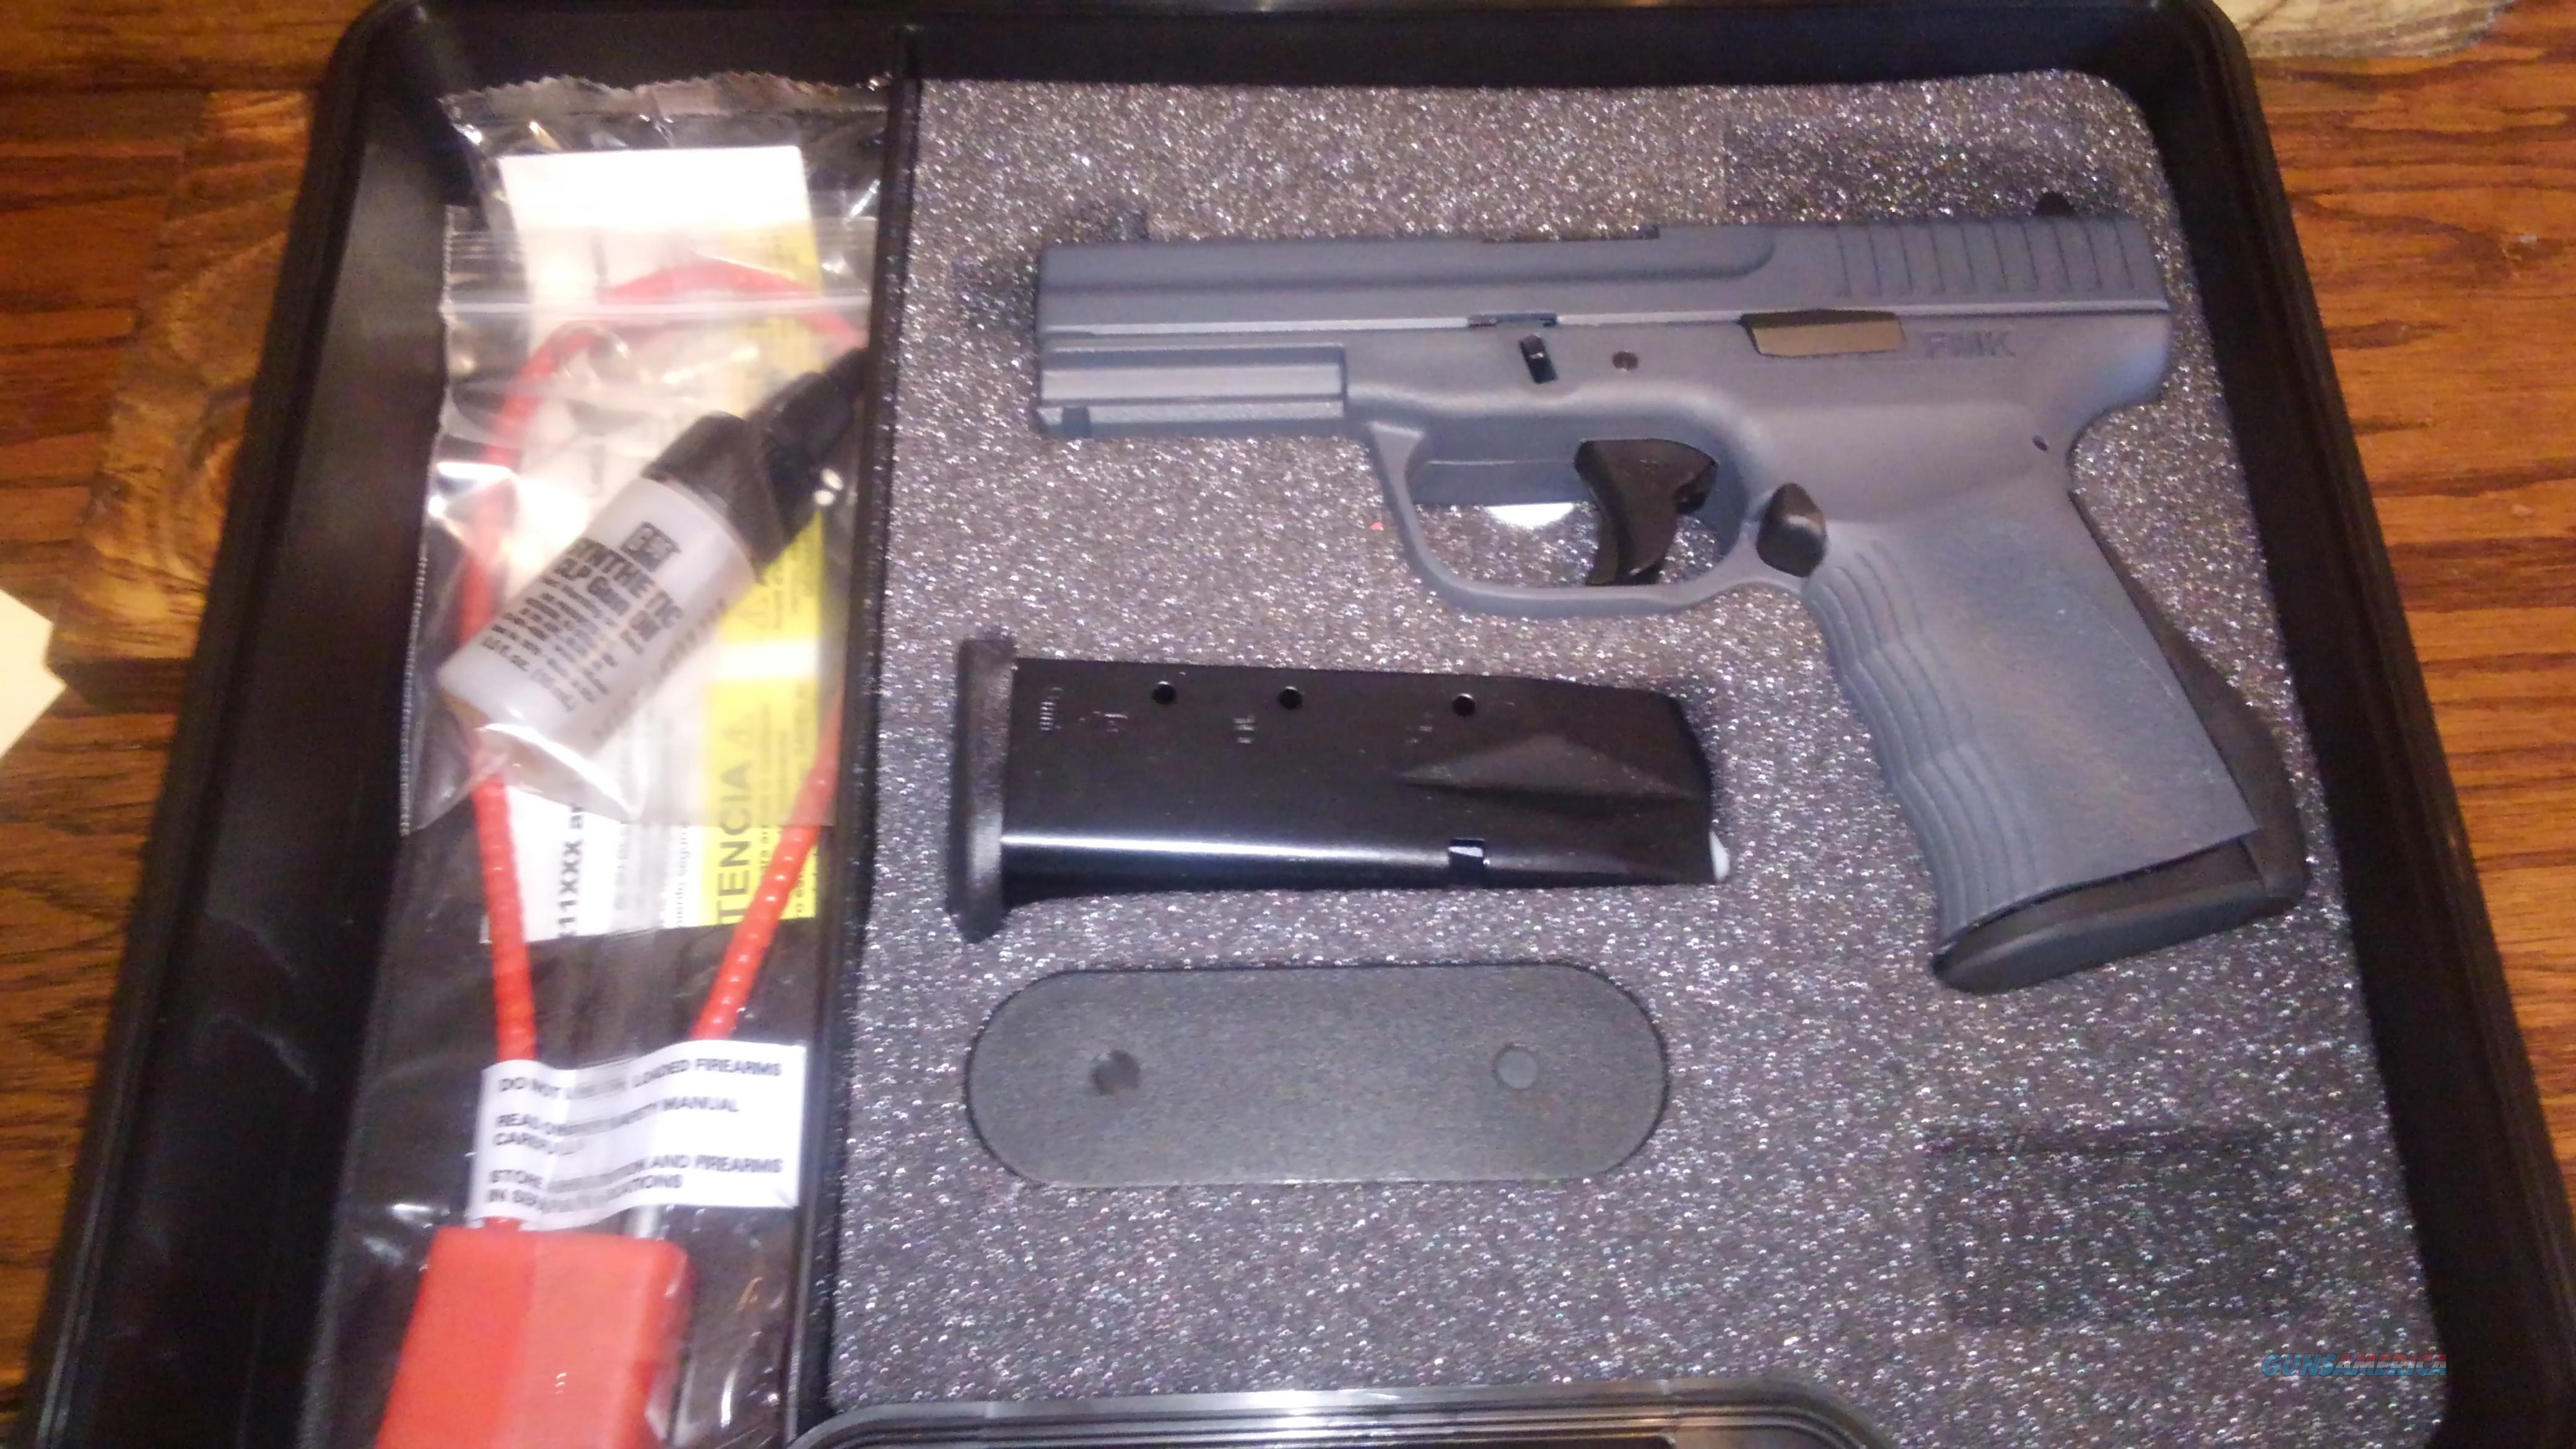 FMK PATRIOT II NIB 9MM 2-14RD MAGS, FREE SHIPPING NO CC FEE (Glock, ruger)  Guns > Pistols > FMK